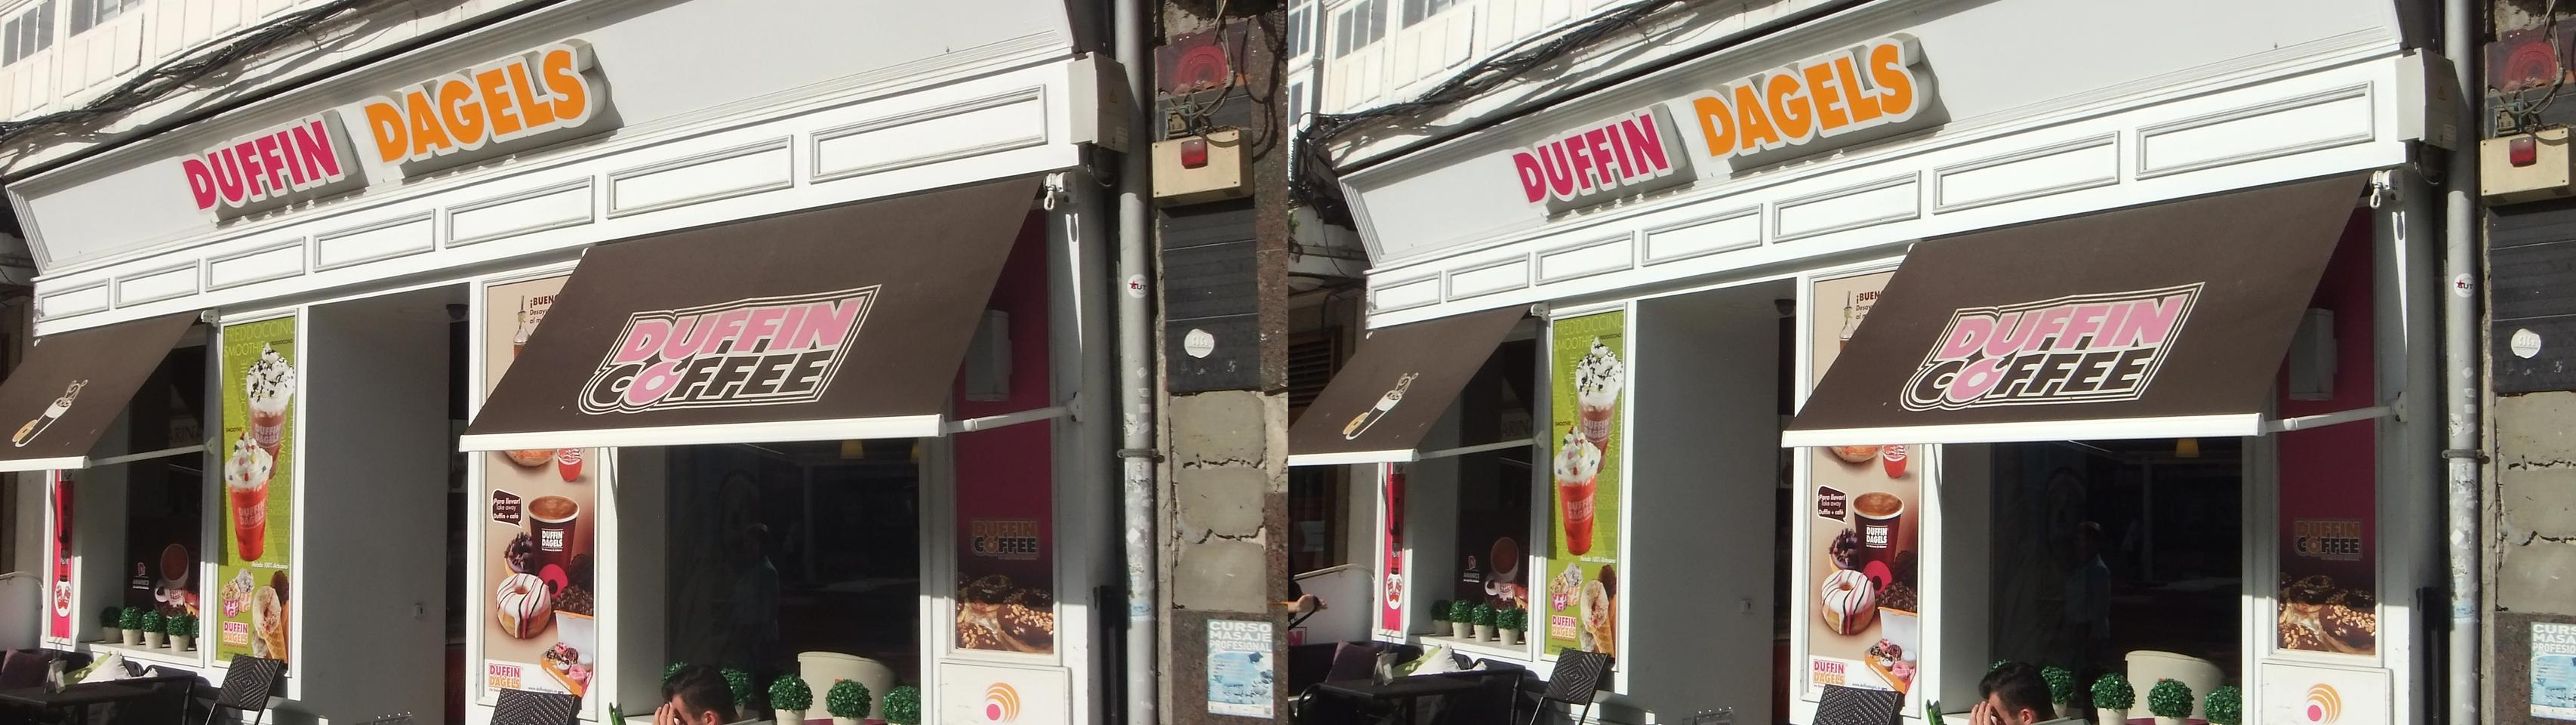 Duffin Dagels?  Reminds me of another chain somewhere else